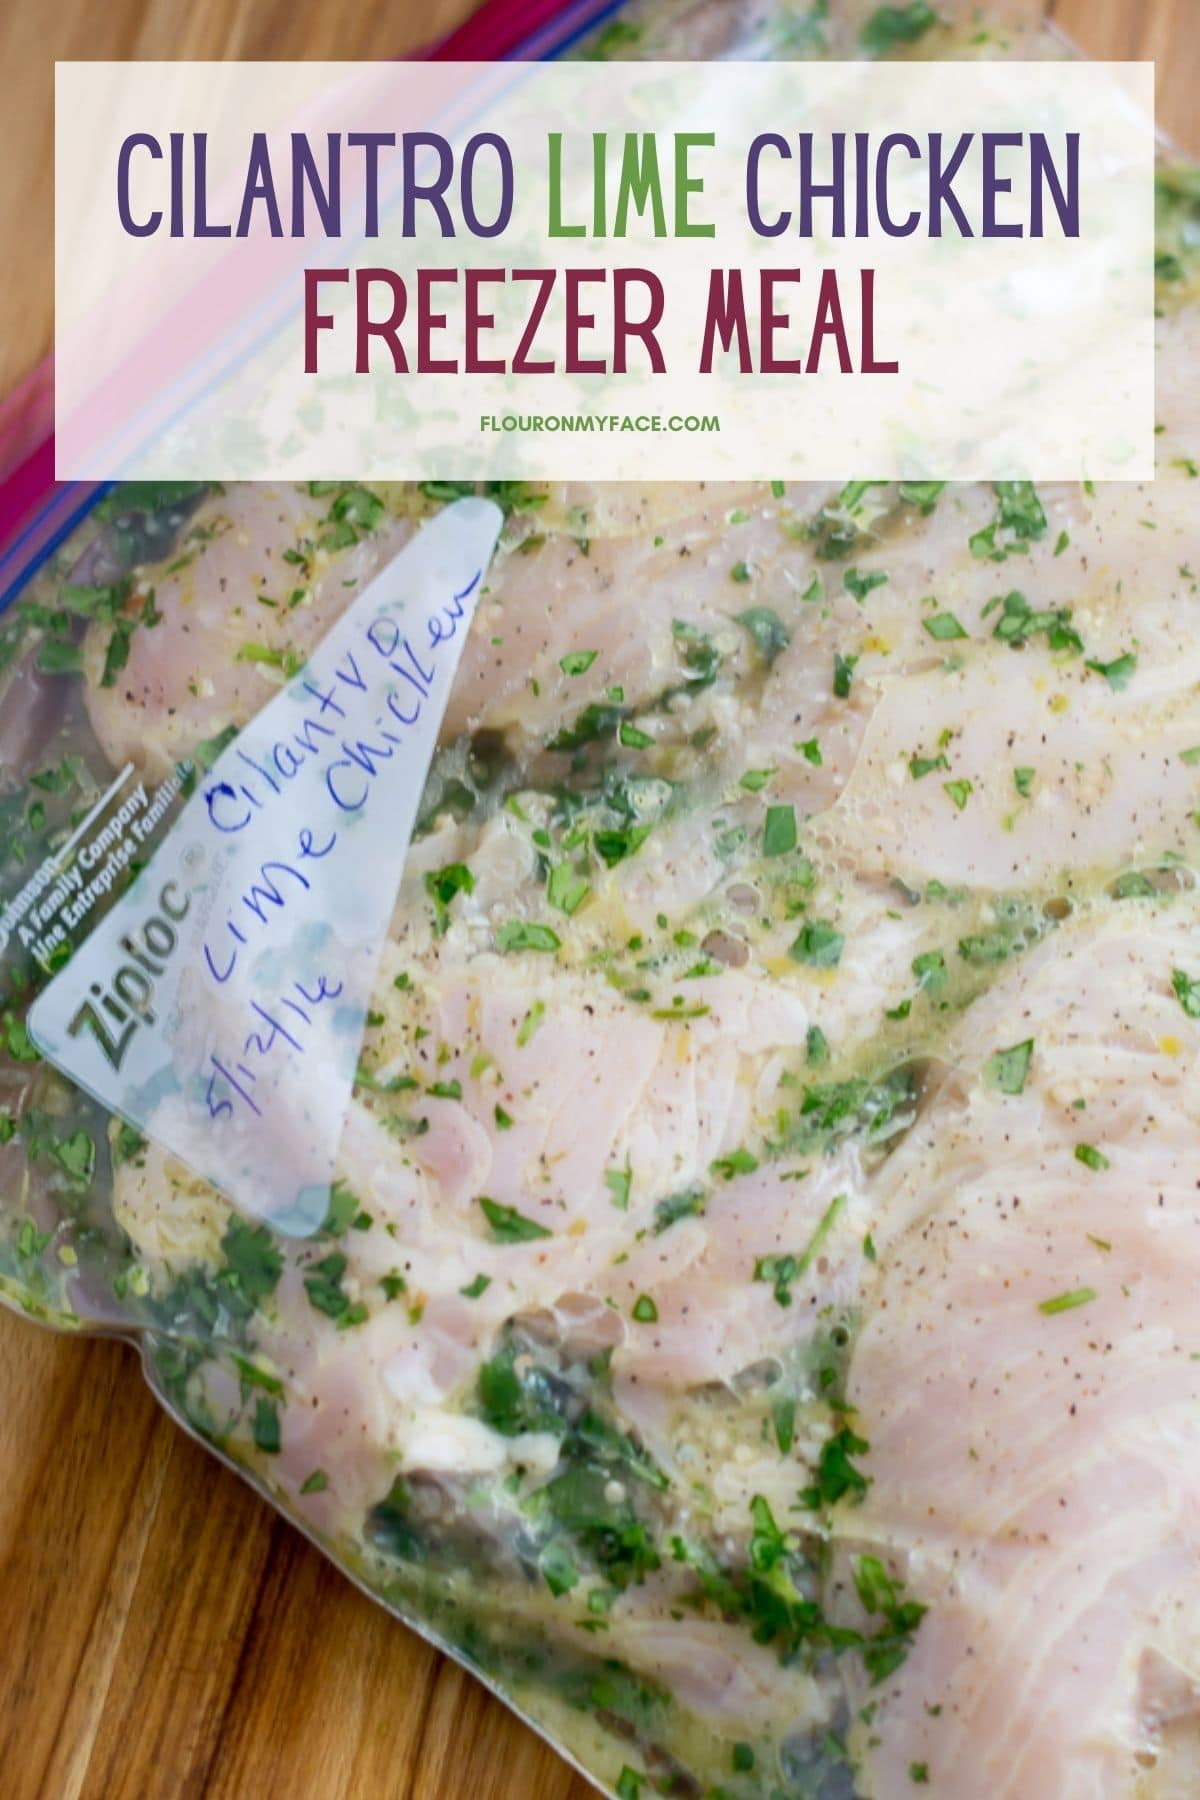 Cilantro Lime Chicken marinating in a freezer bag.